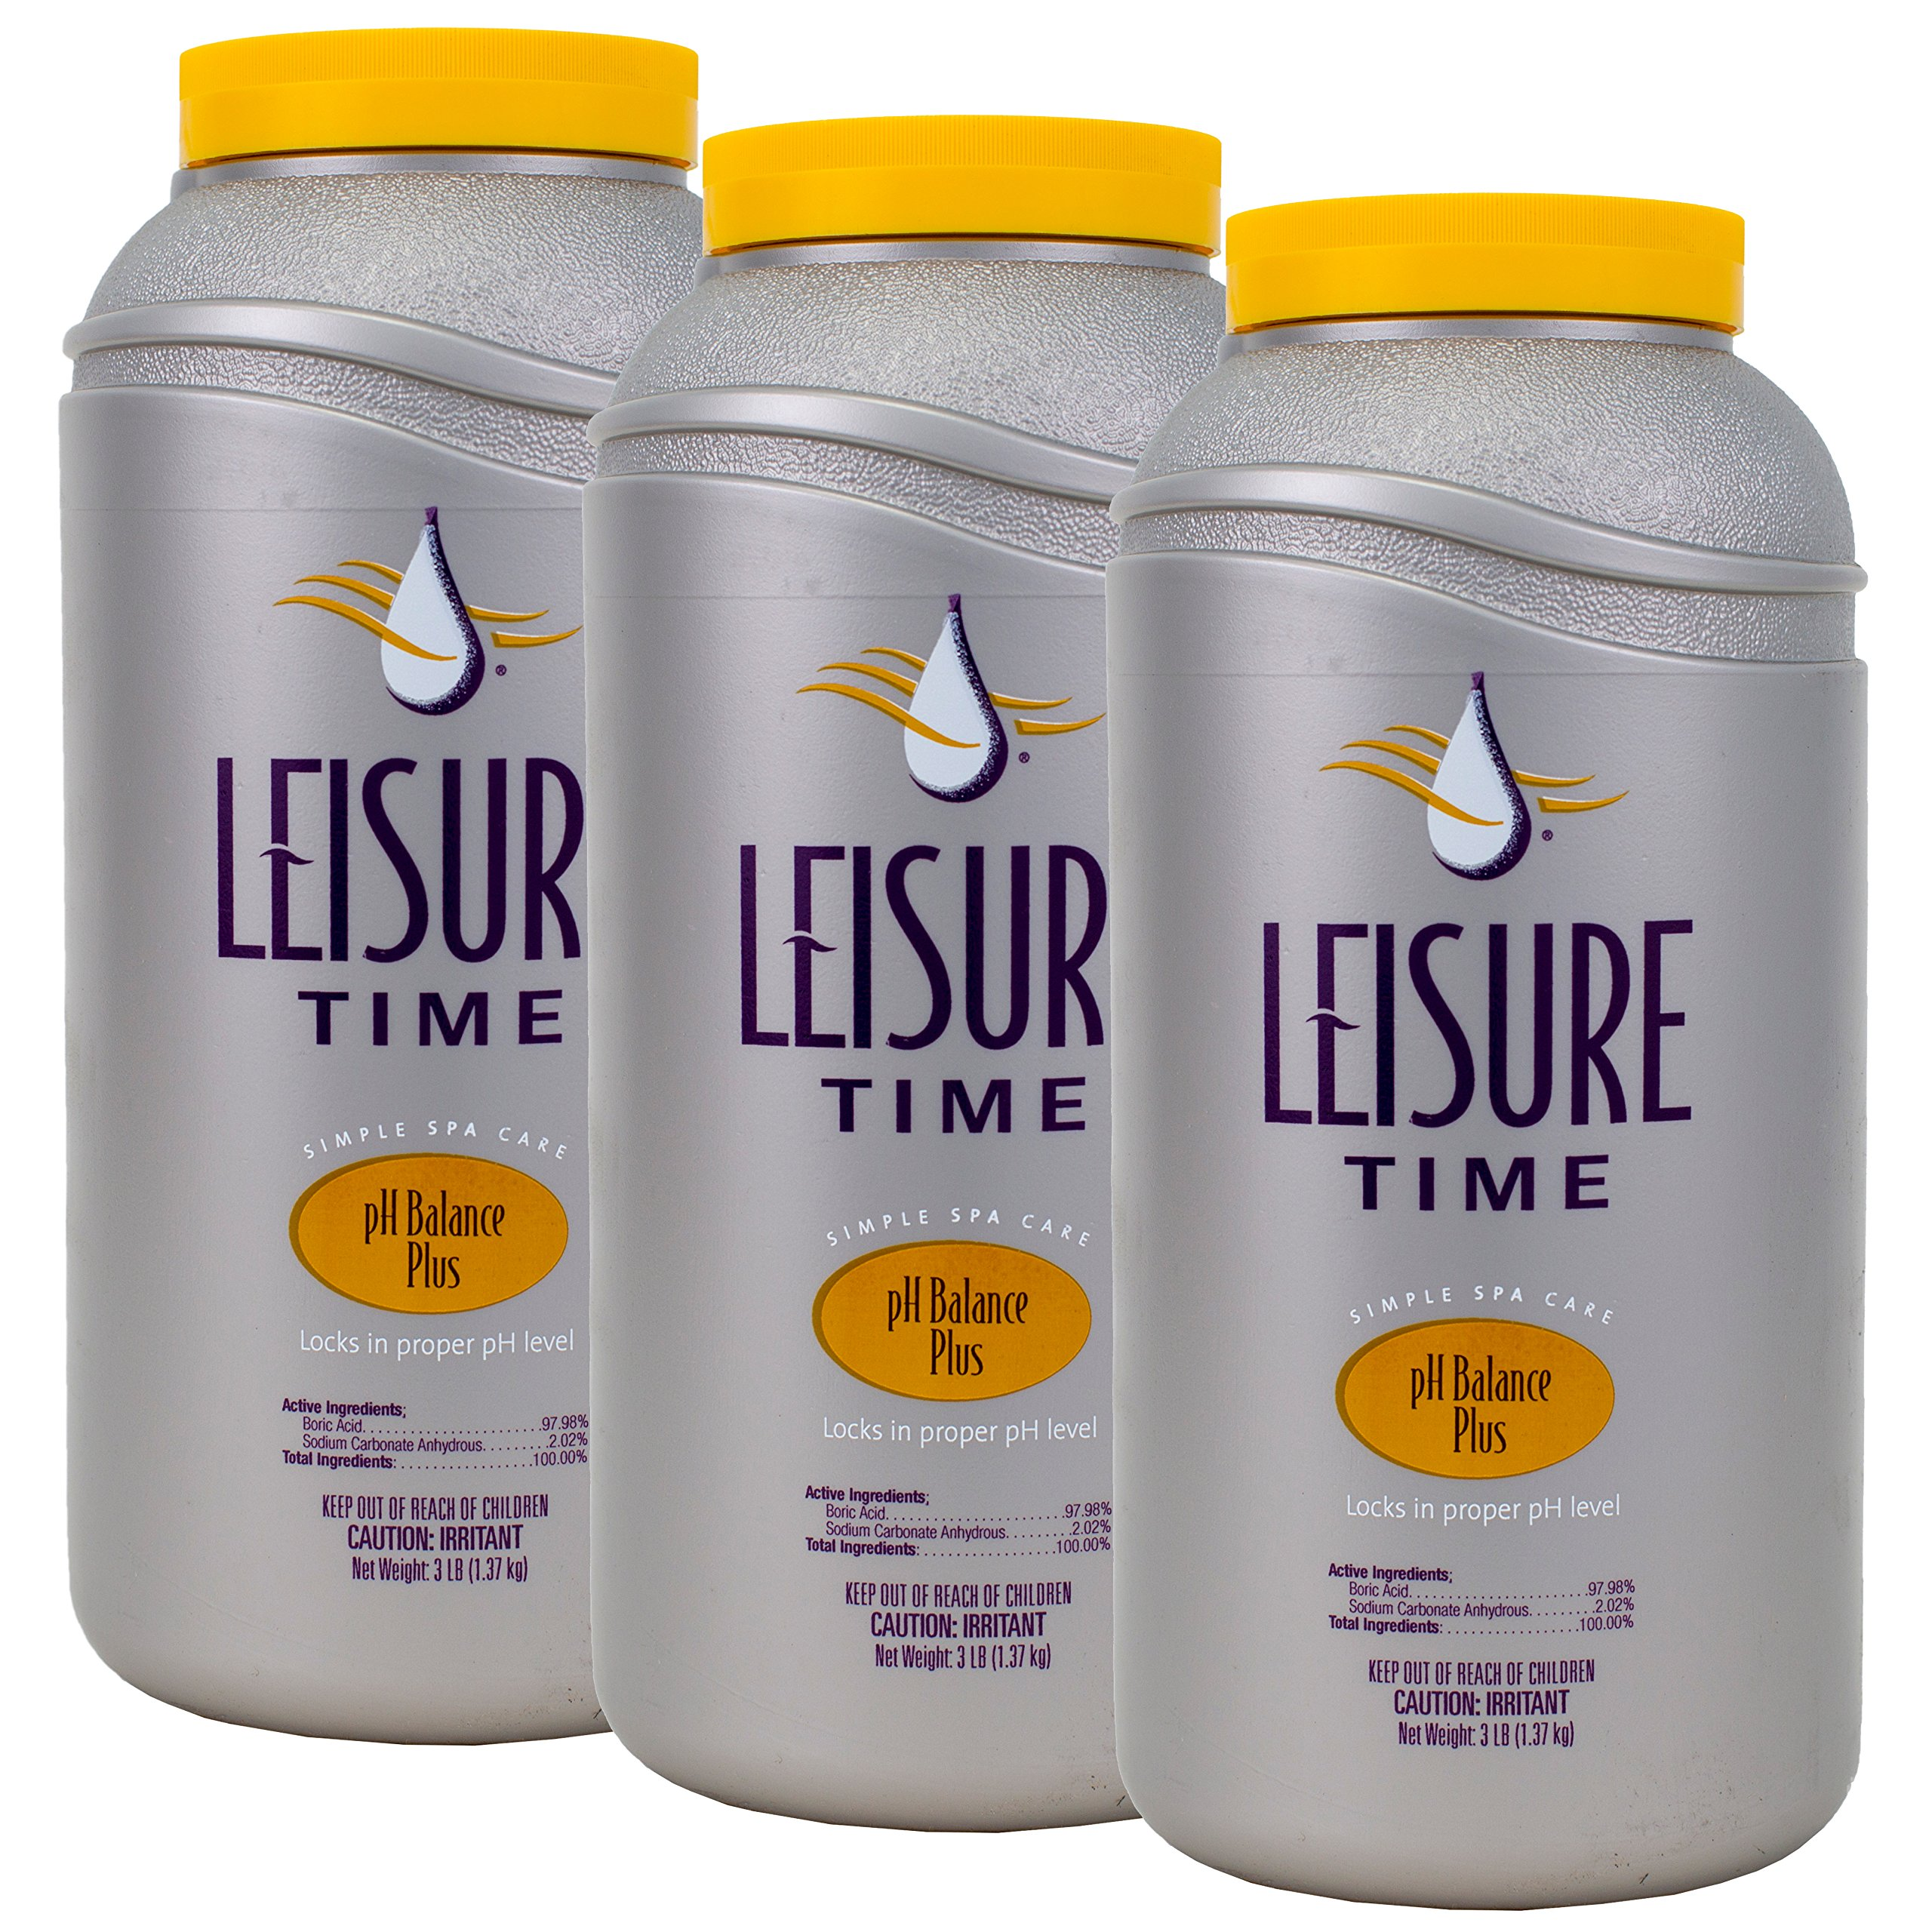 Leisure Time PH Balance Plus (3 lb) (3 Pack) by LEISURE TIME